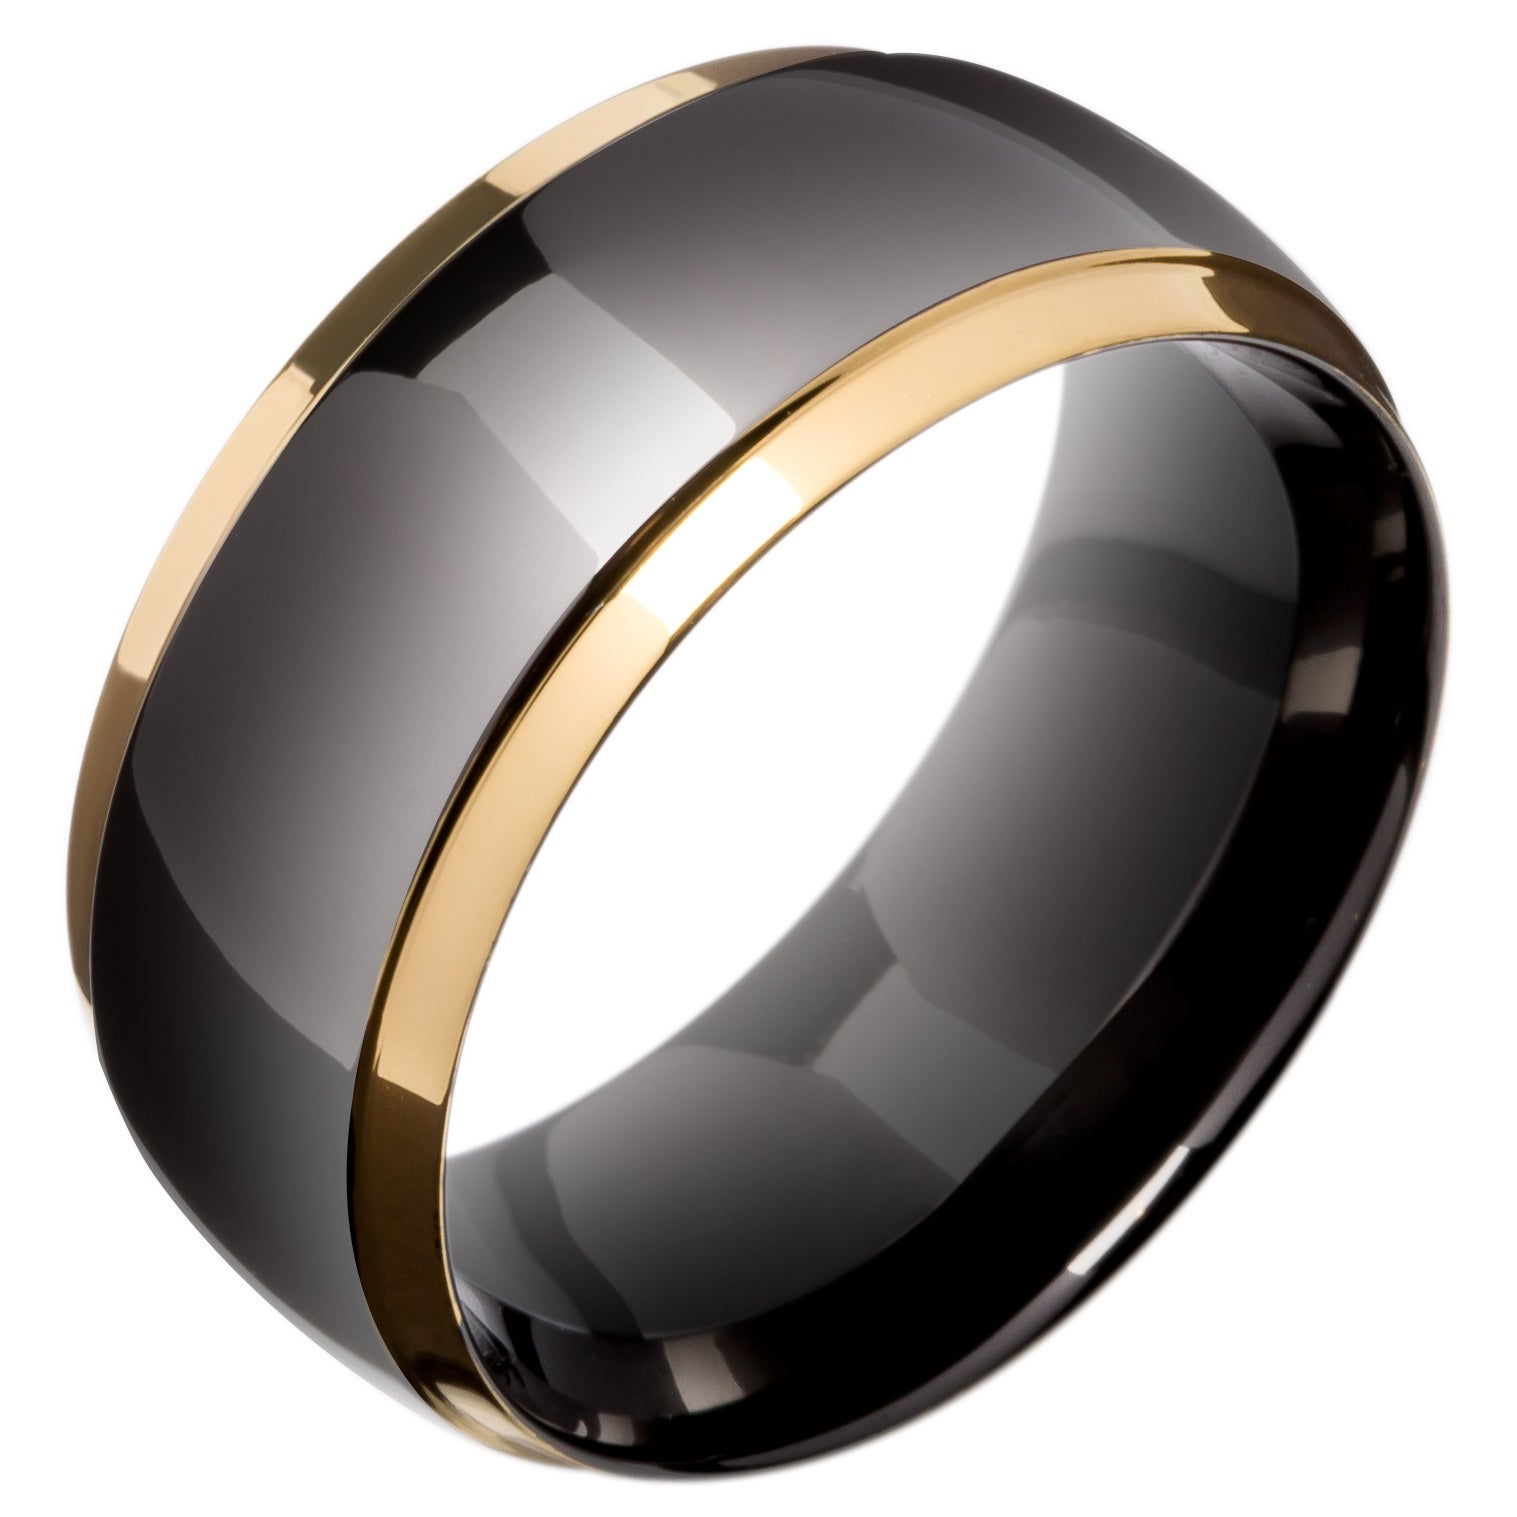 pictures s band concept of ring titanium rings inspirational ideas new black men wedding cavalier jewelers mens